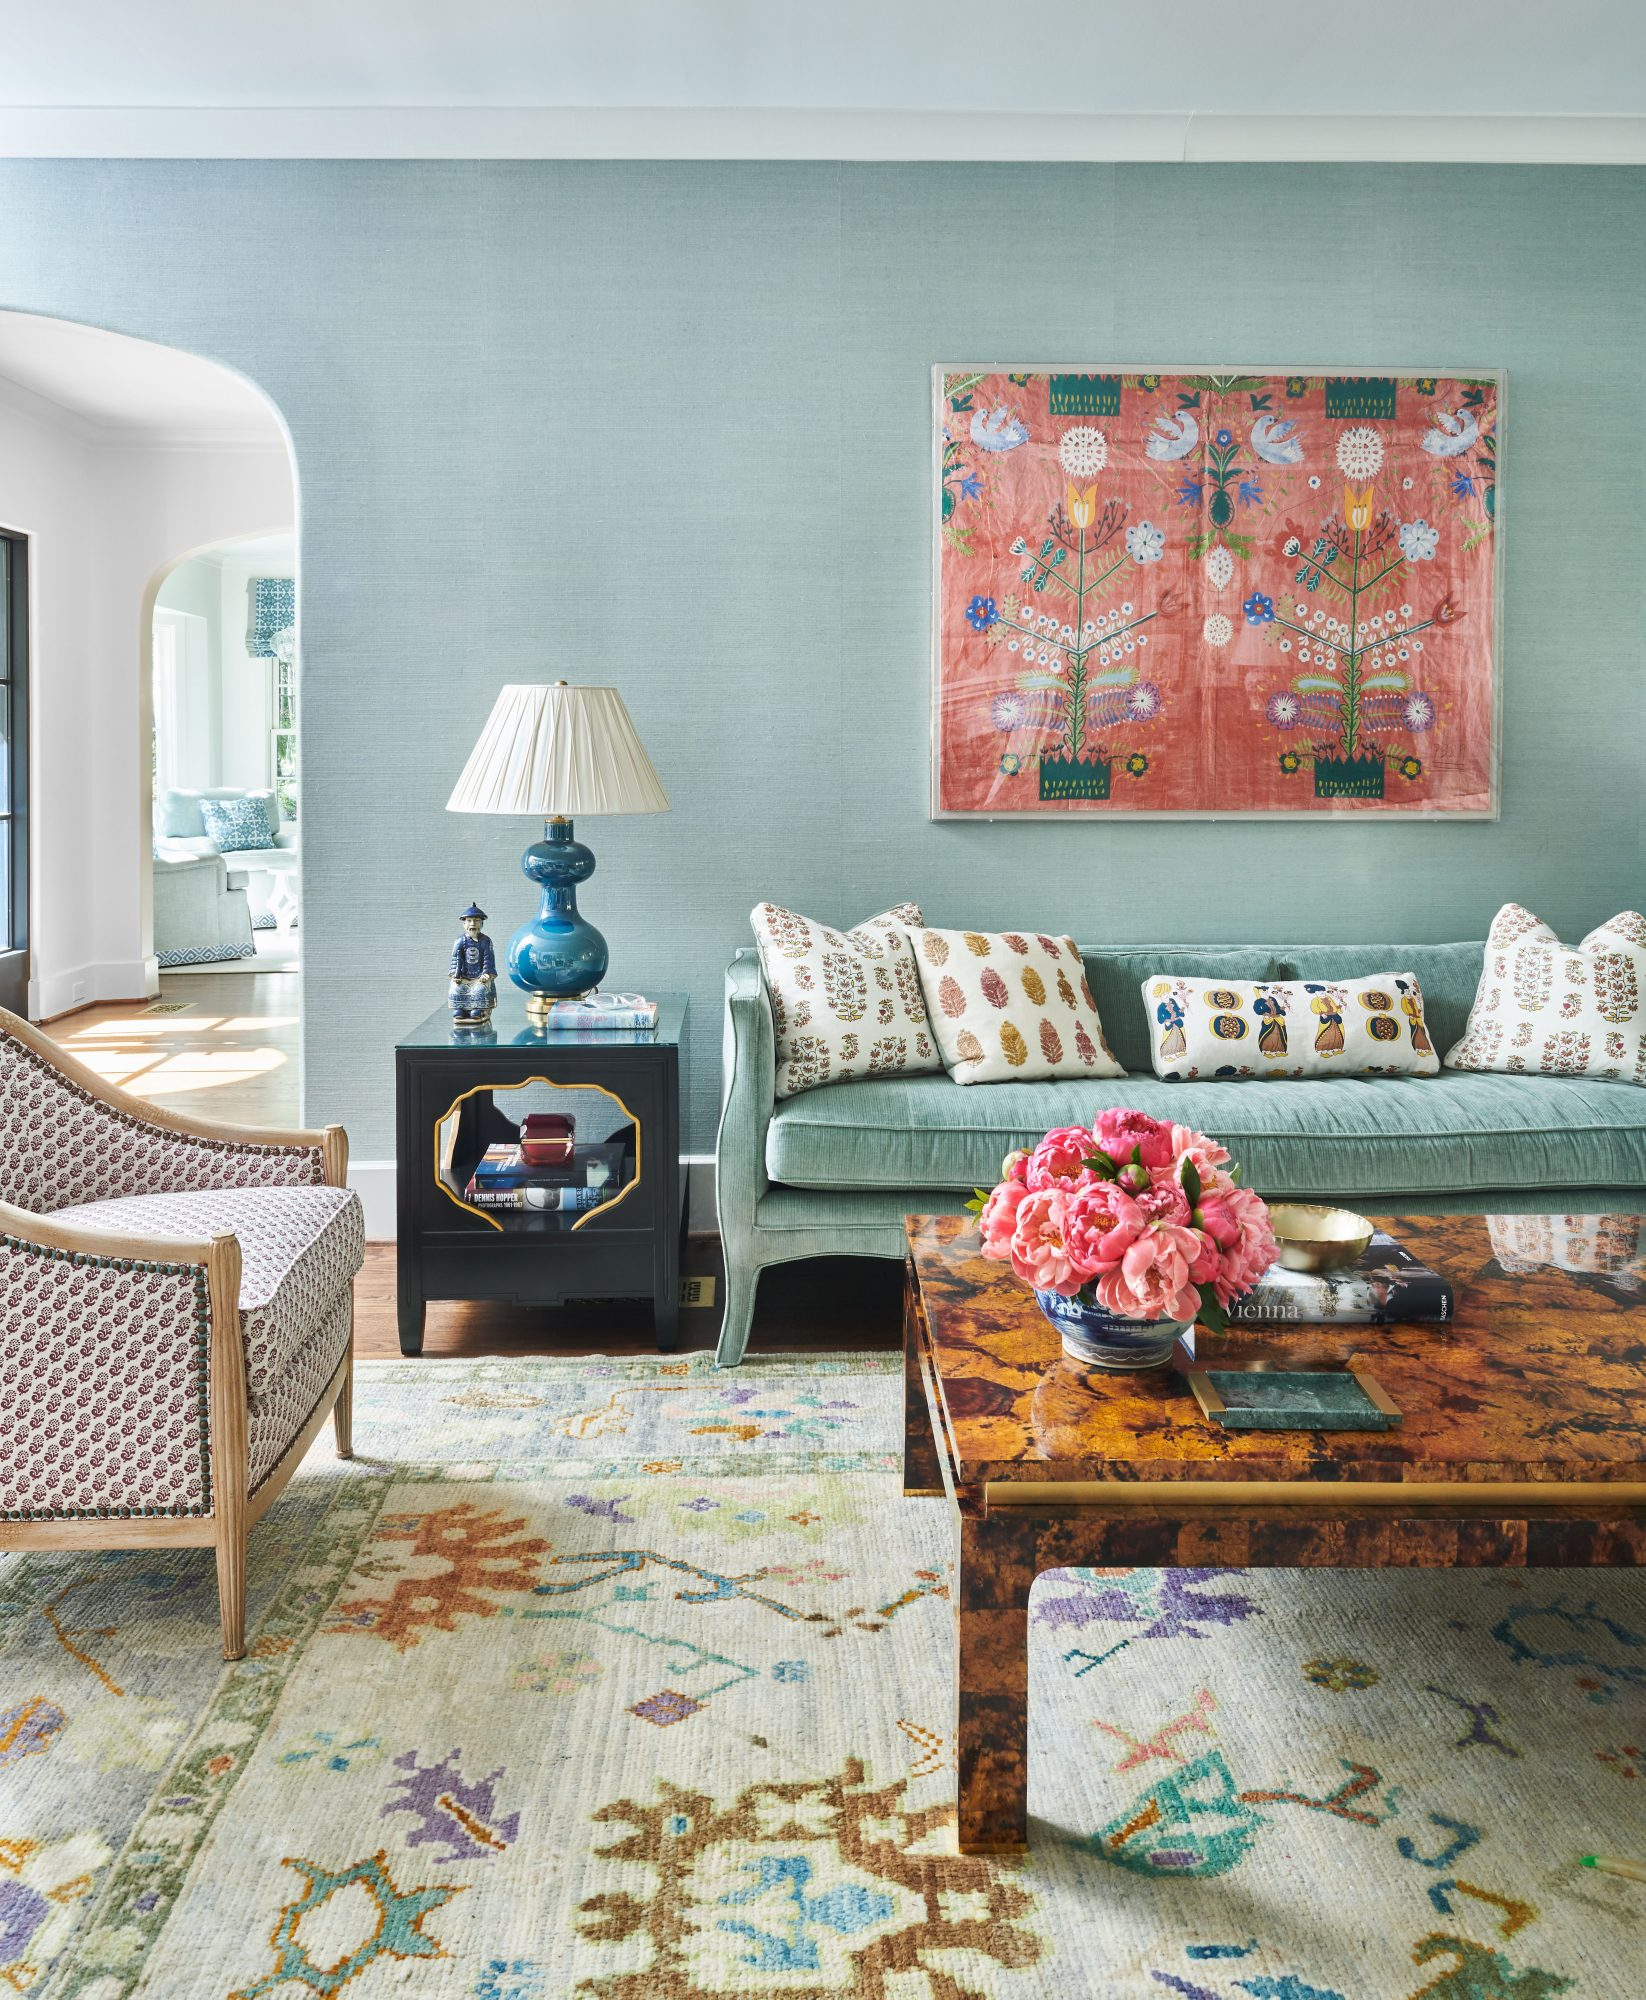 Teal grasscloth walls with accents of pink